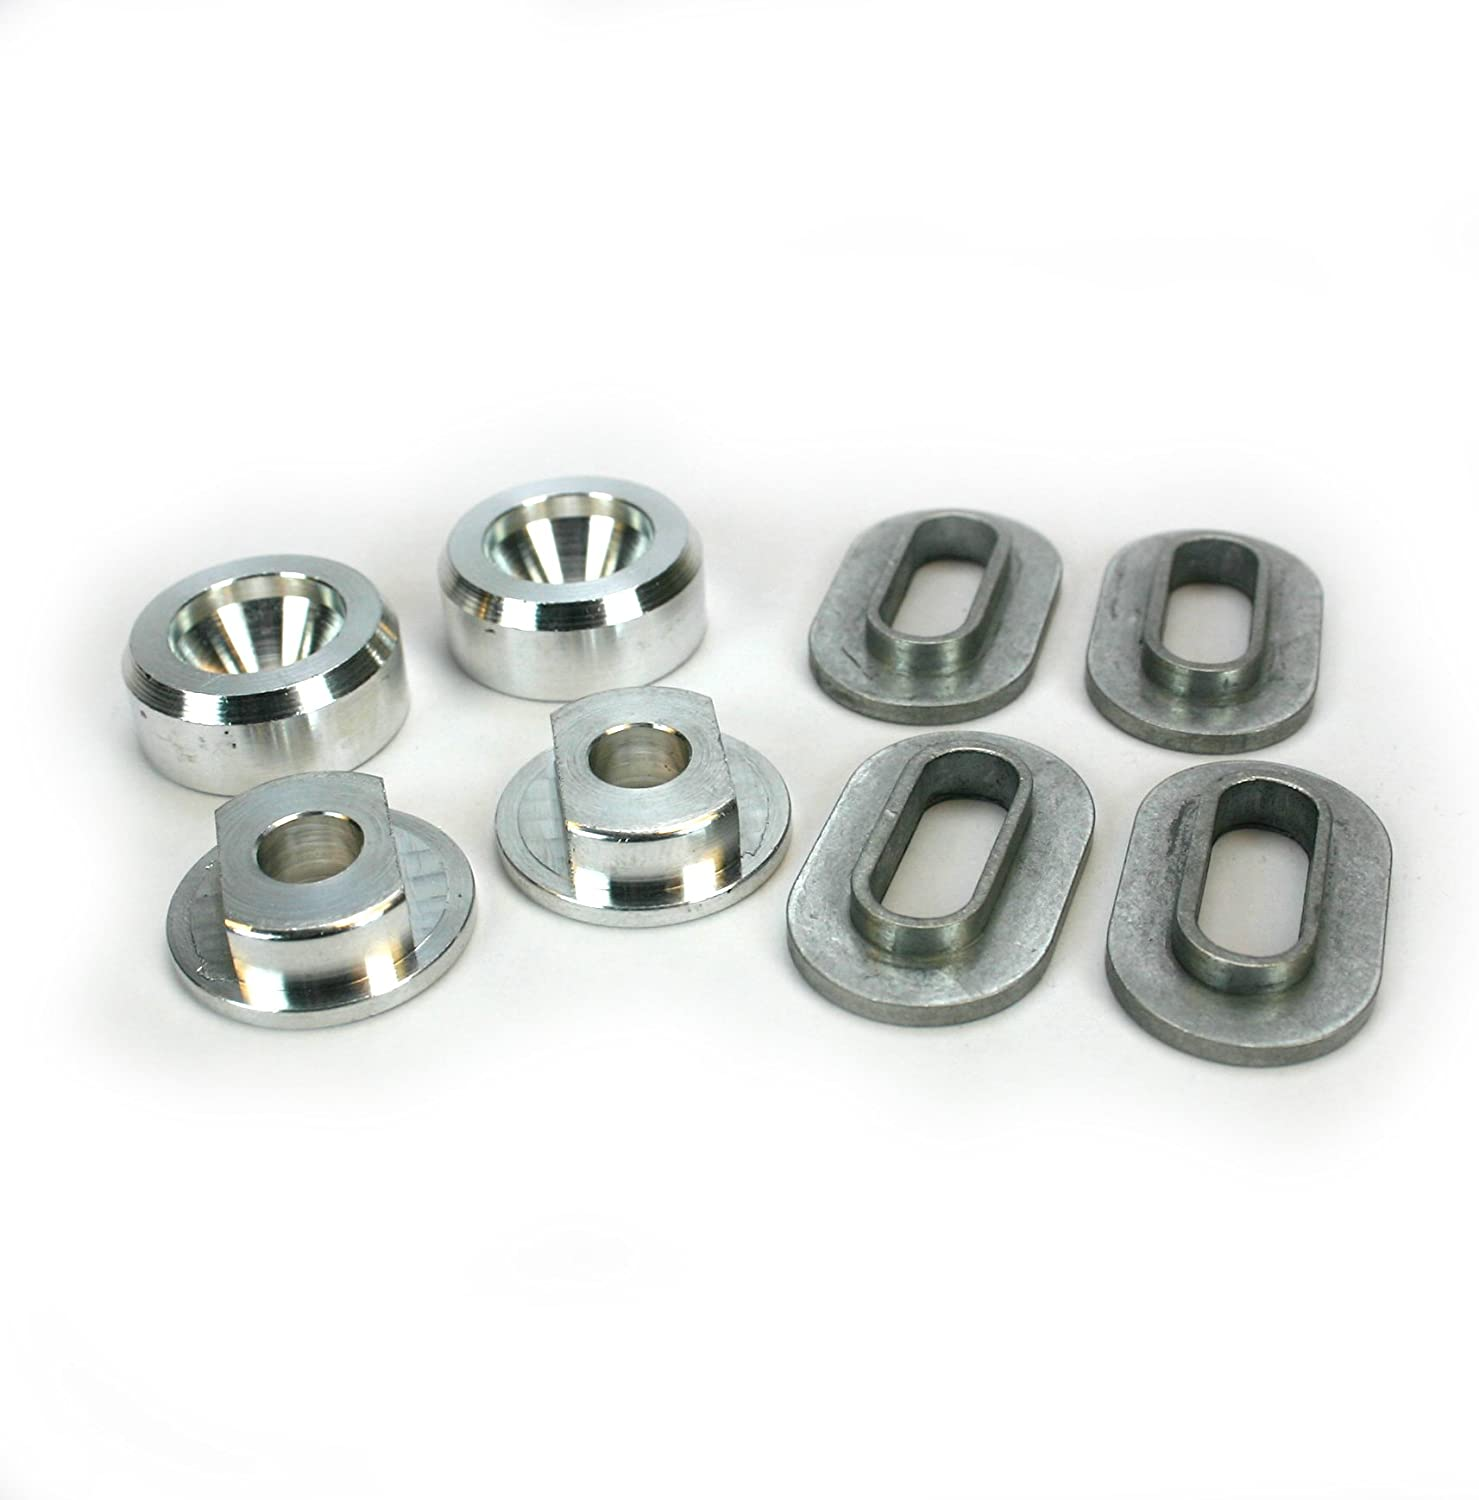 Cycra Phoenix Challenge the lowest price Mall Alloy Grommet Guard Hand Set